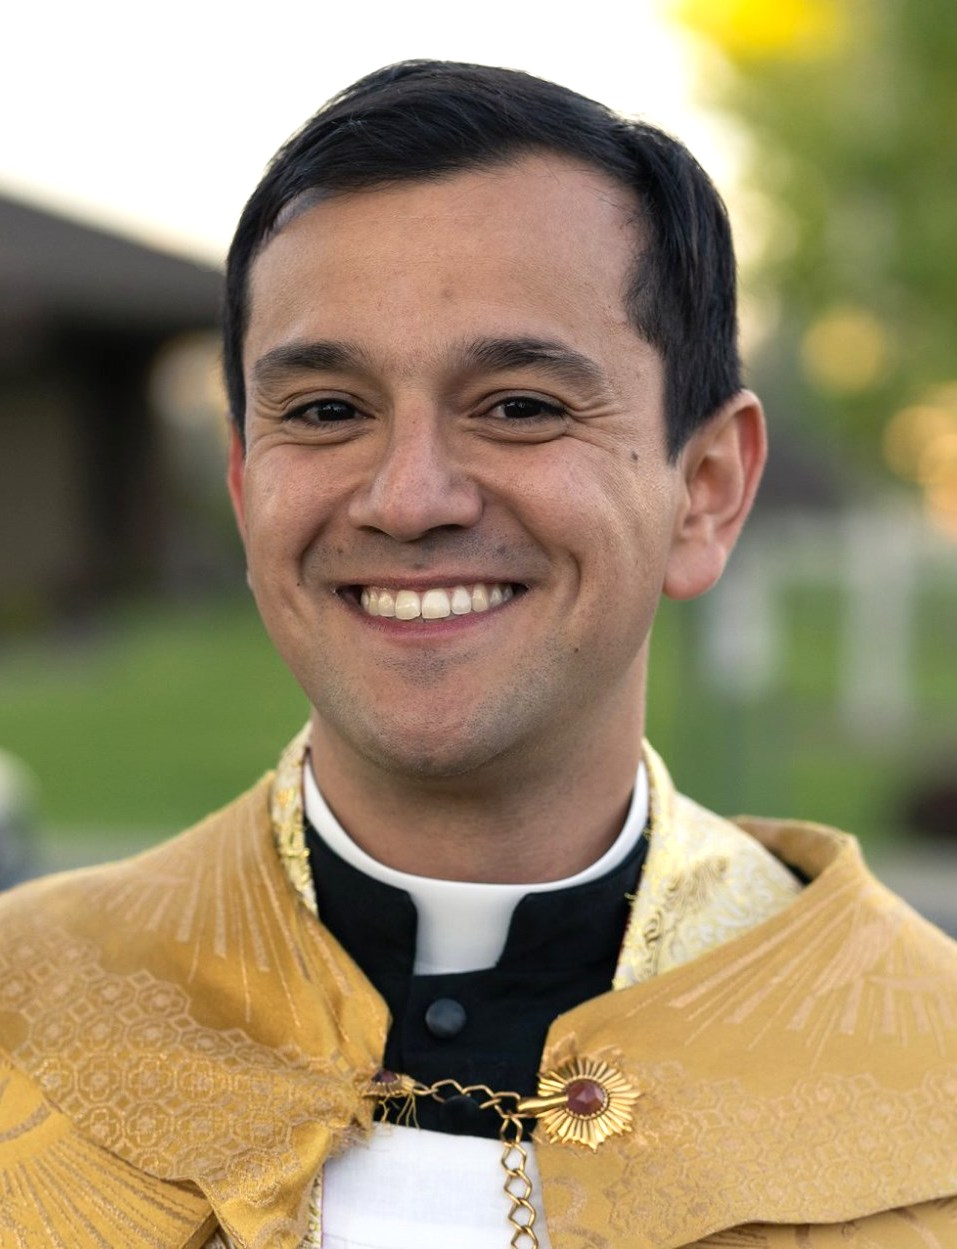 Fr. Edgar Quiroga Assigned to Christ the King Catholic Church